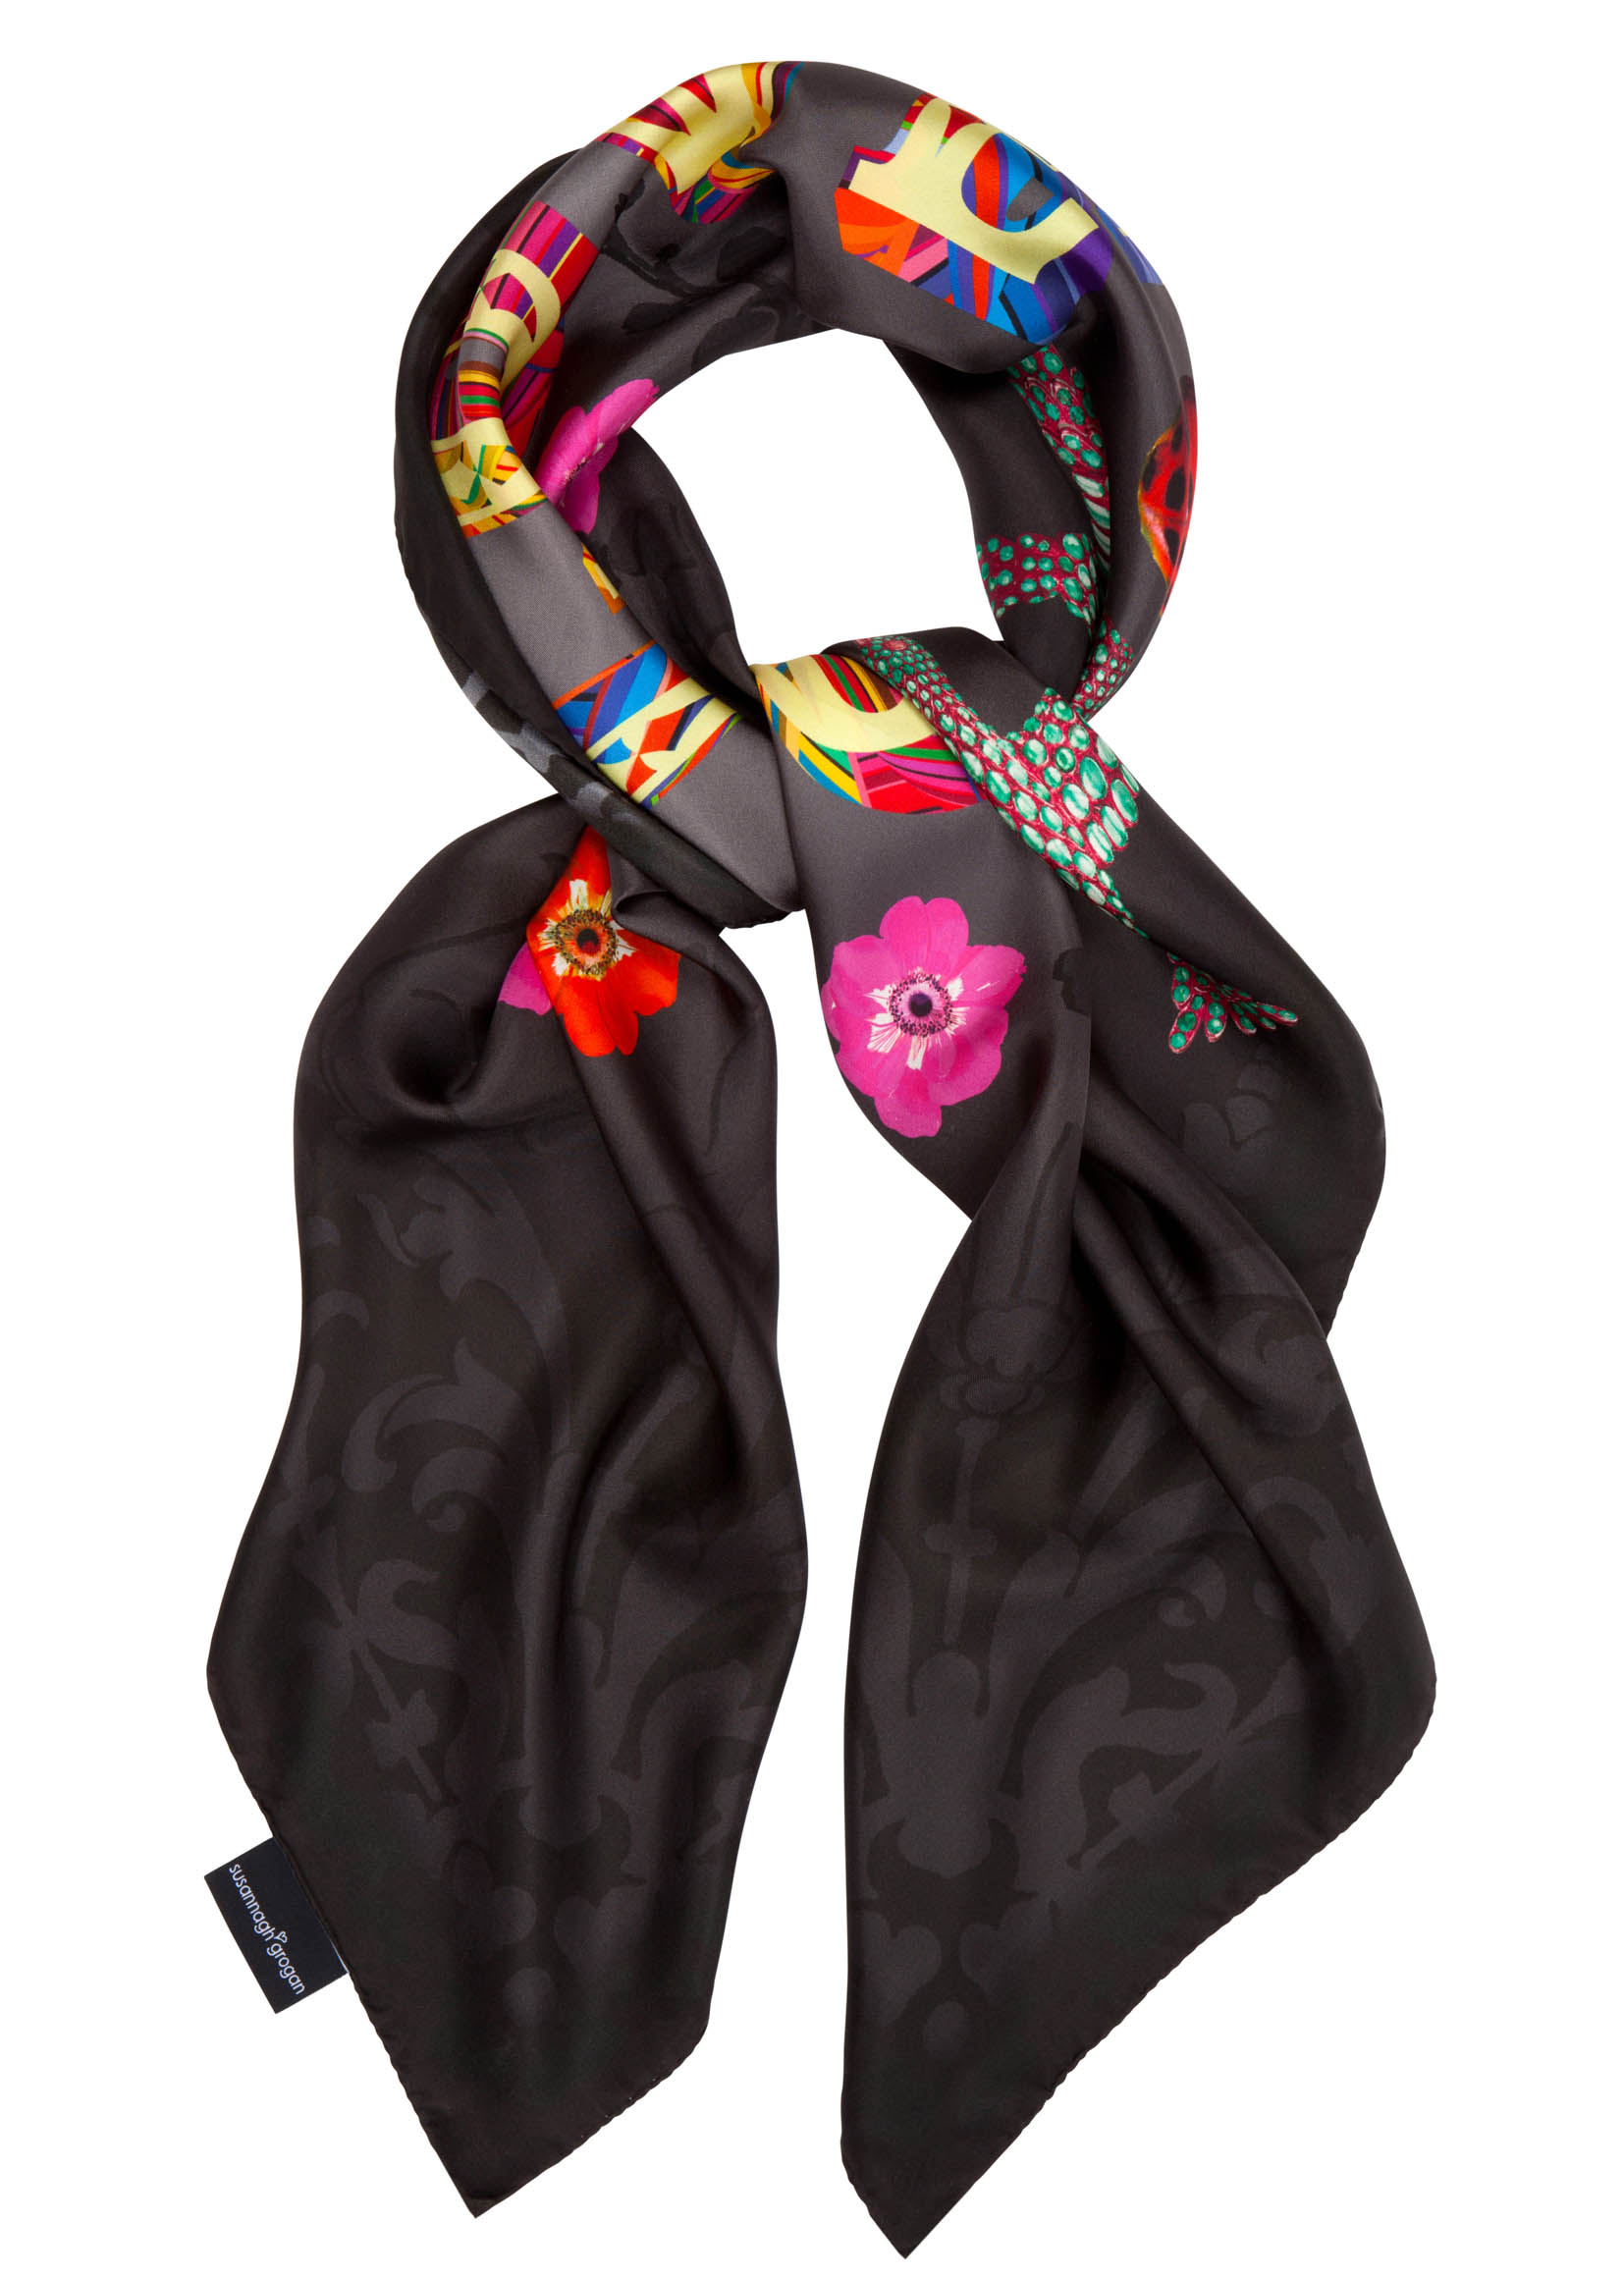 Love XL Scarf | It's back in black (& red)